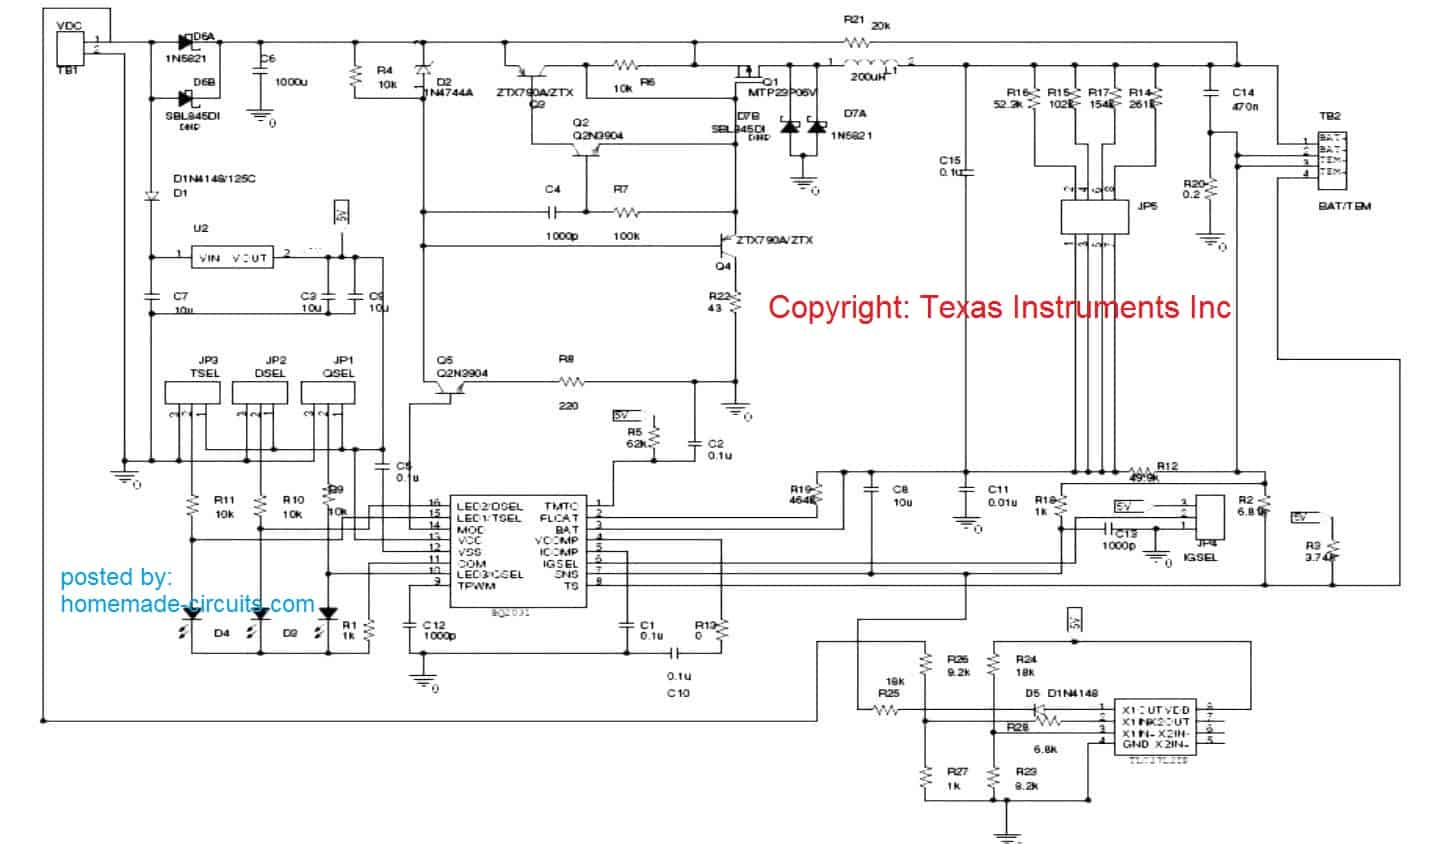 Simple Solar Cell Battery Charger Circuit Diagram Diagrams Panel Mppt Pic16f88 The Best 10a 12v Diy Enthusiasts